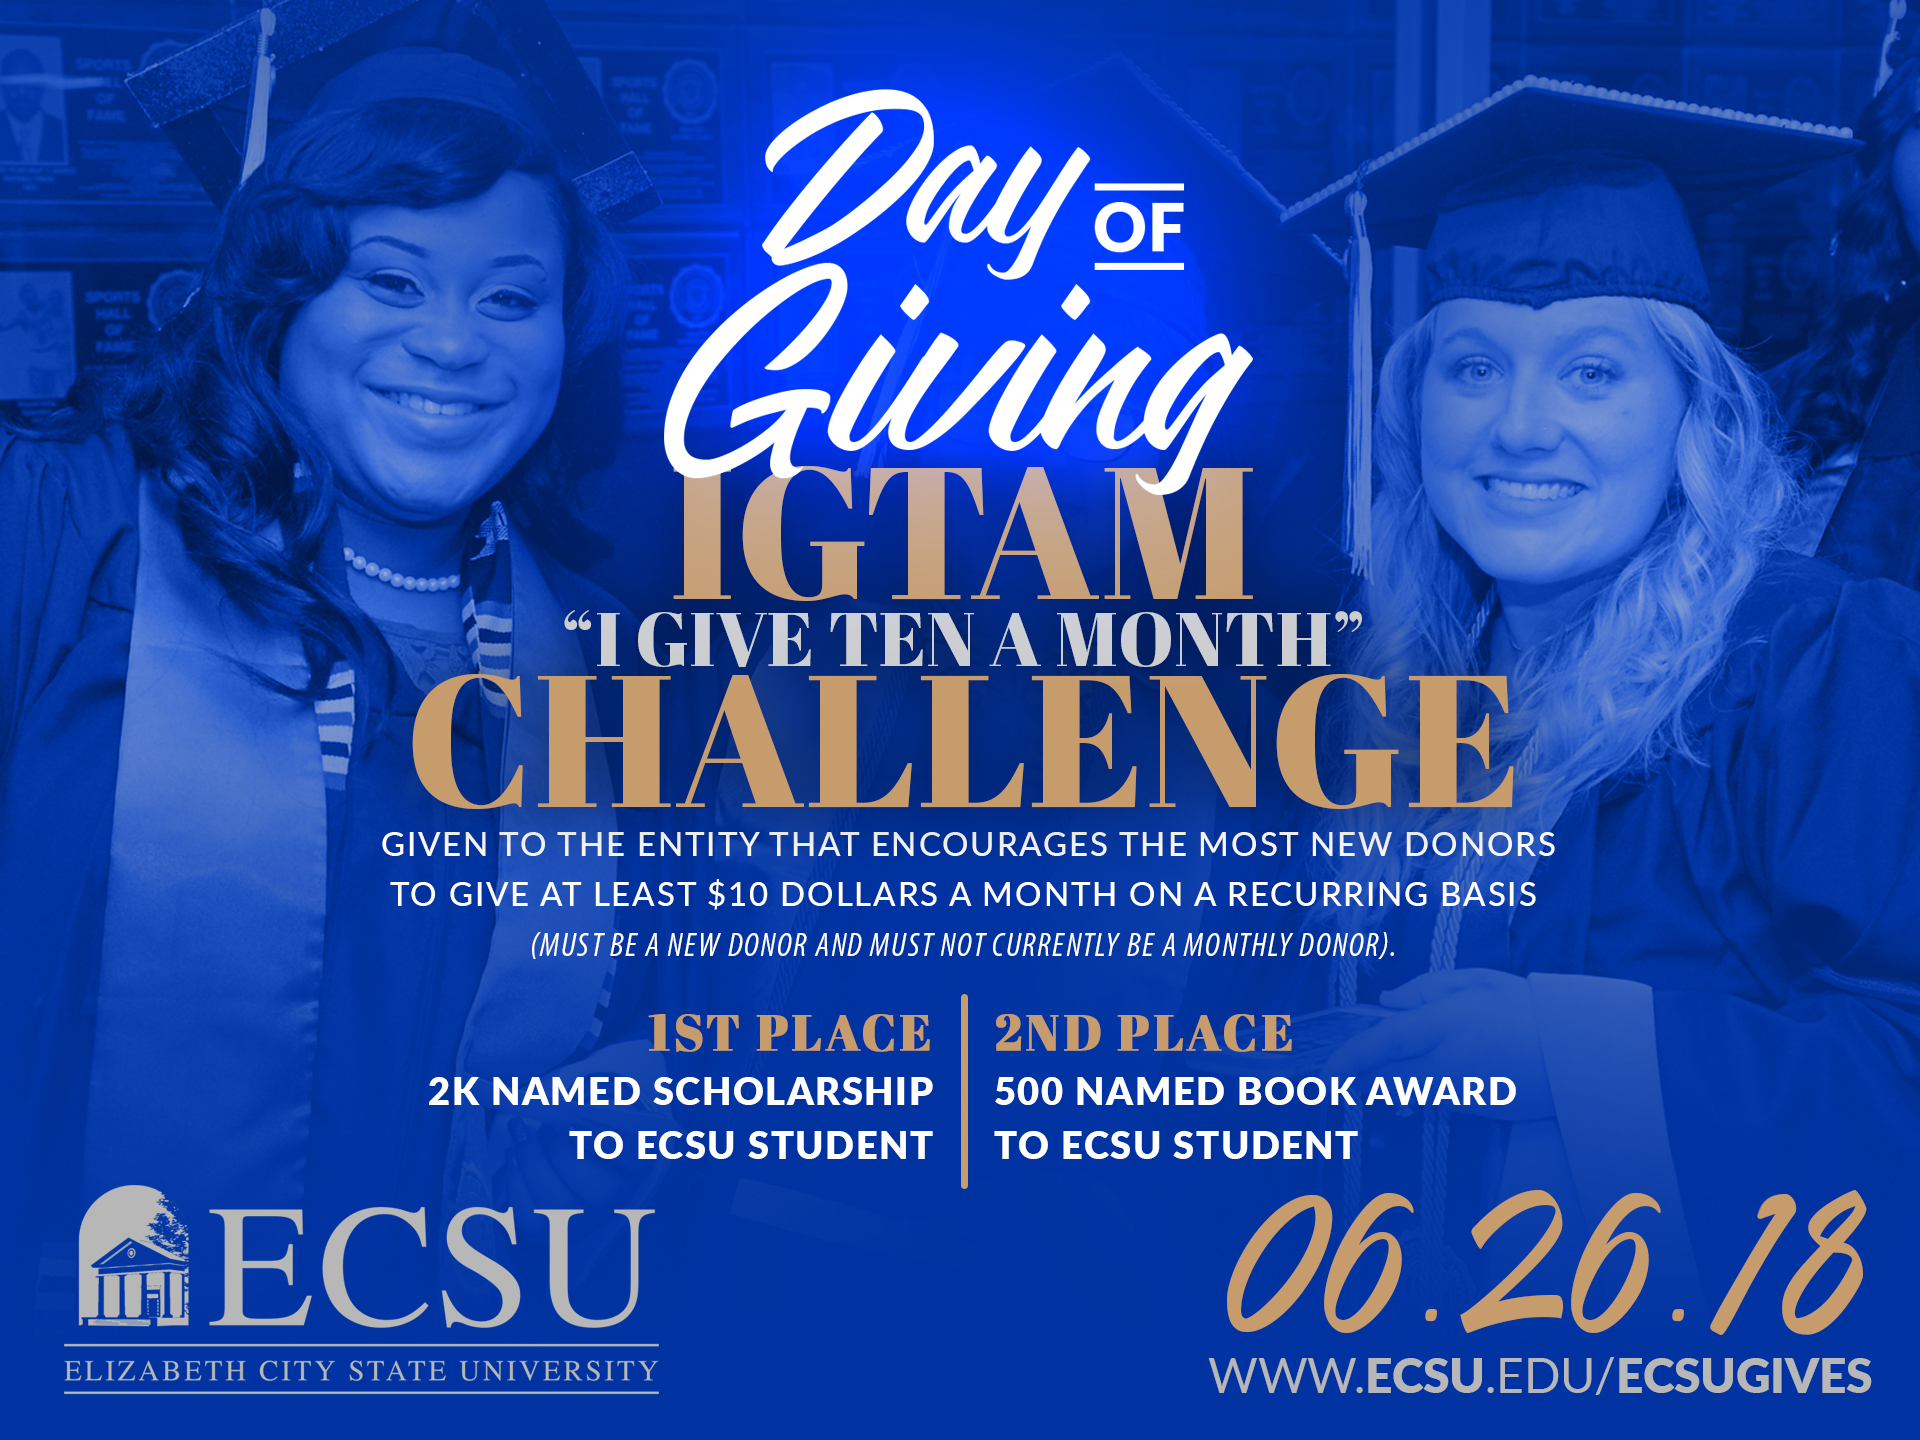 Ecsu day of giving igtam challenge5